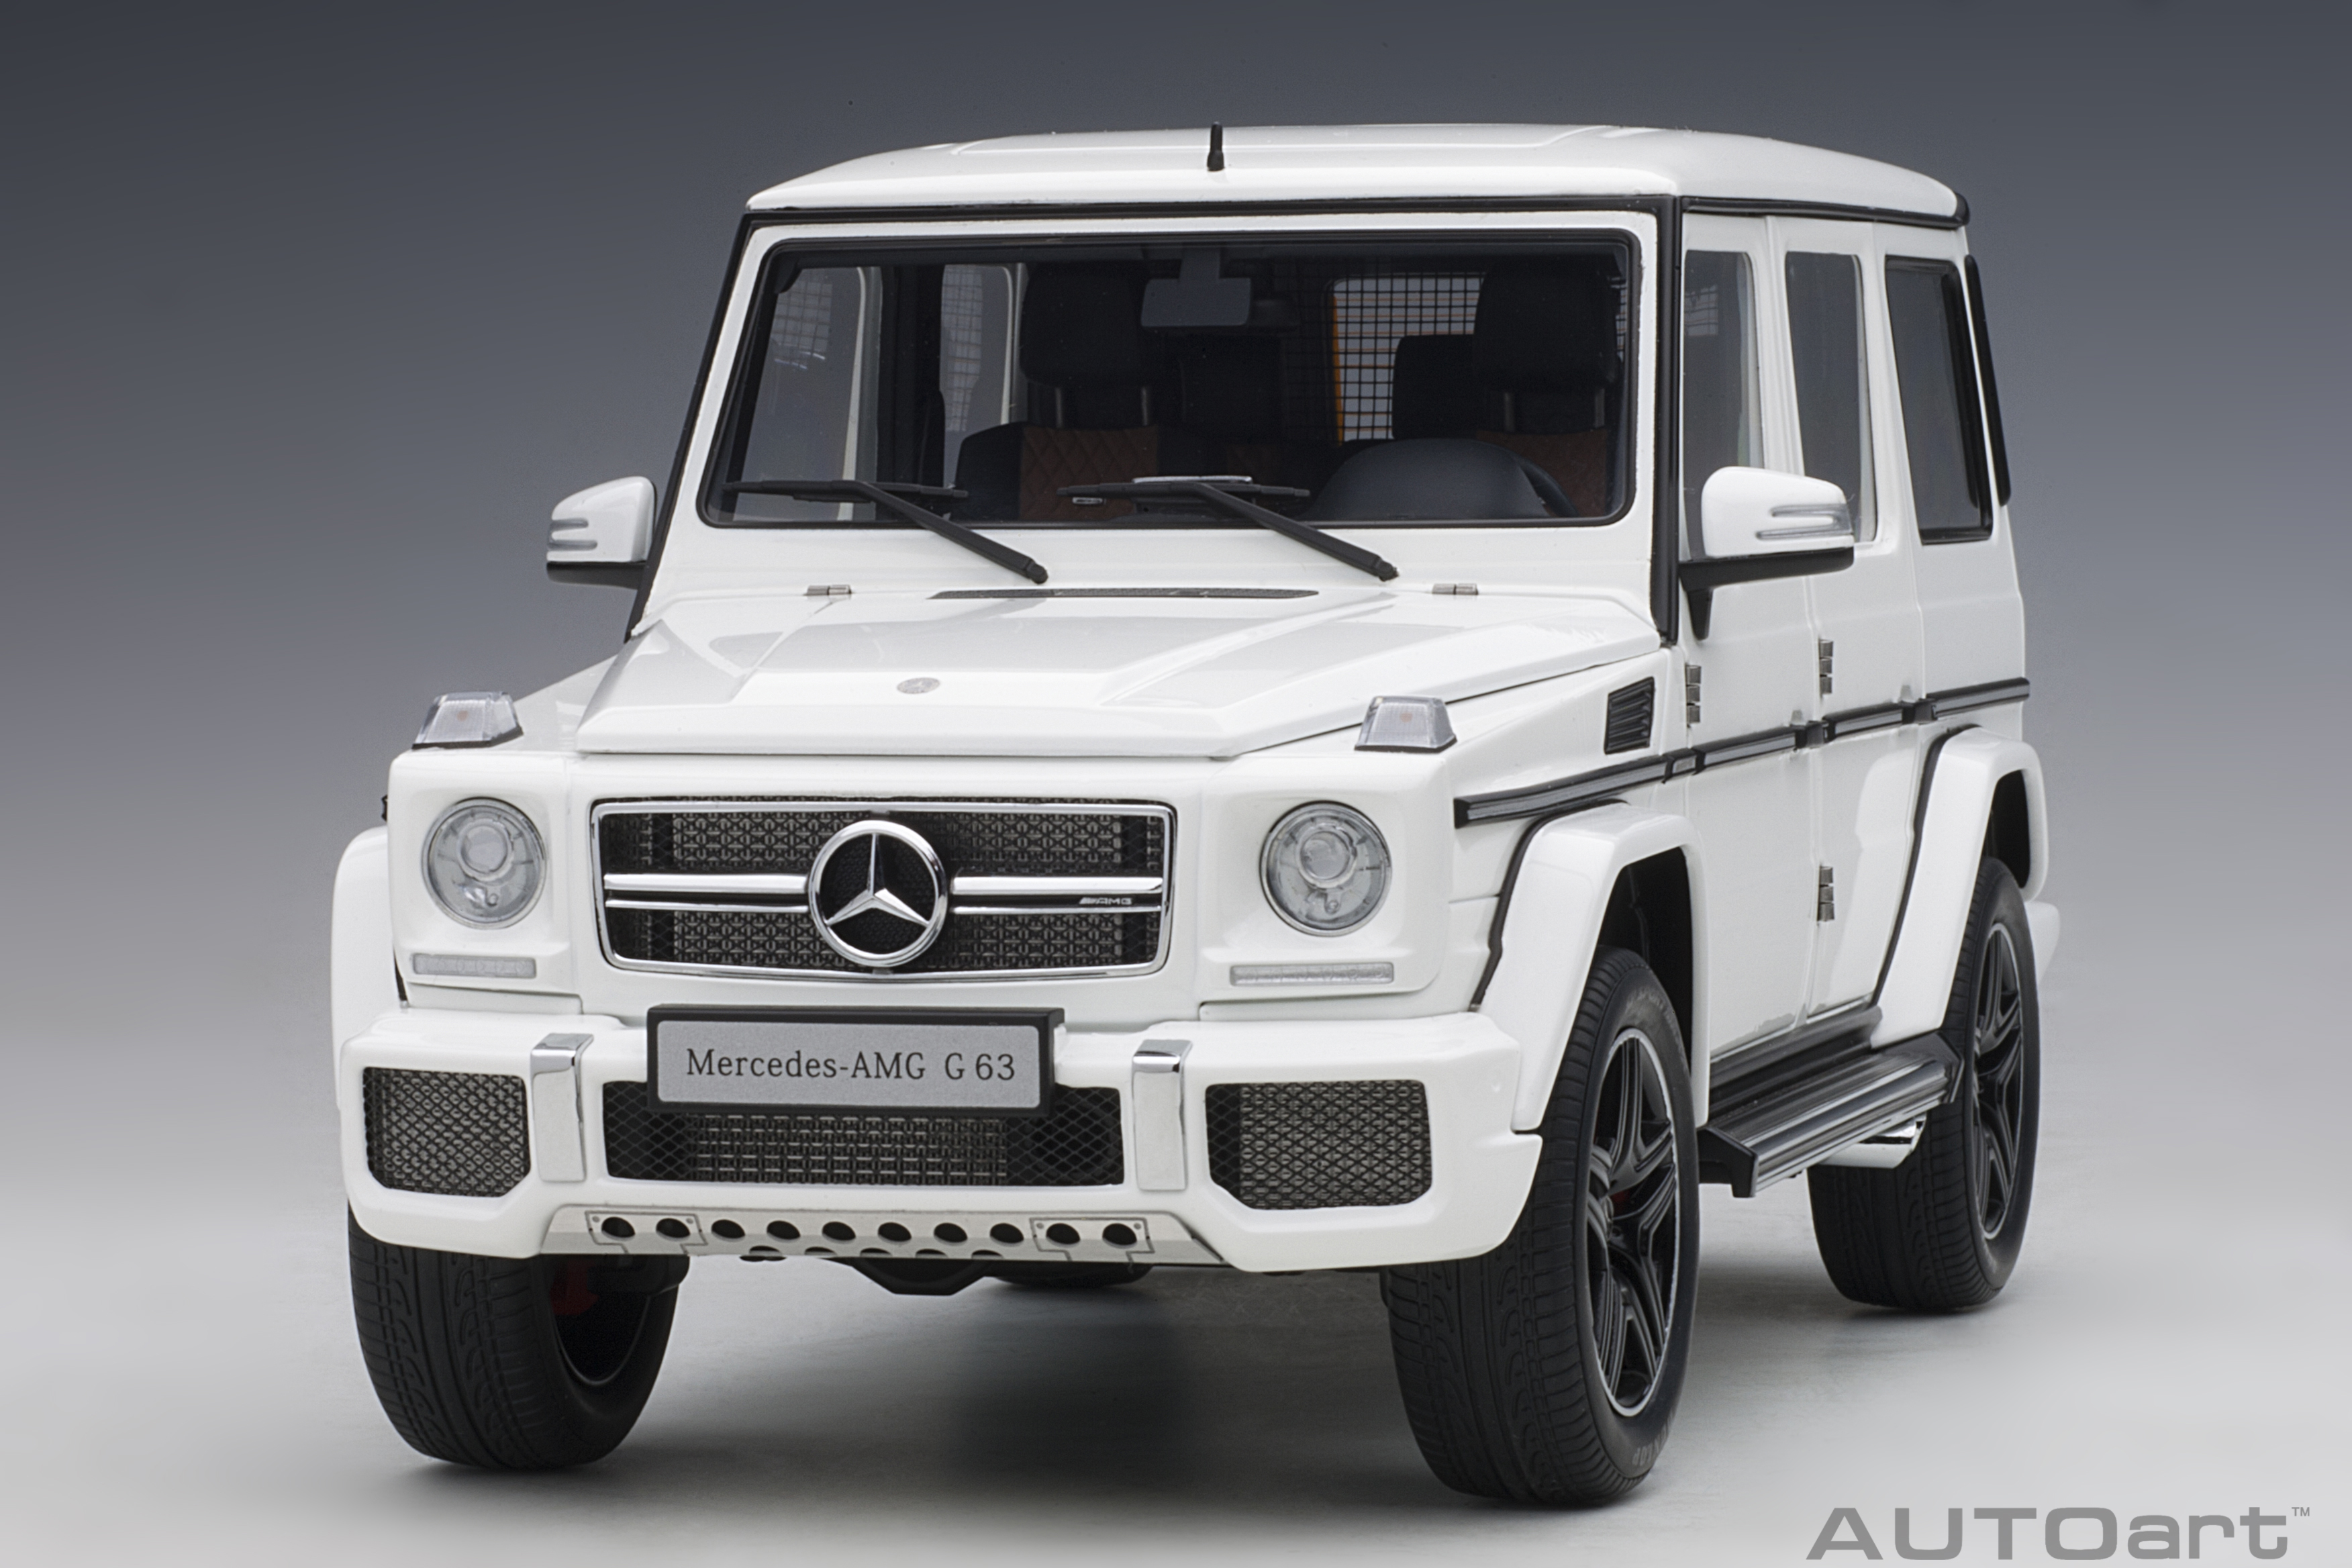 autoart 76321 modellauto mercedes benz g63 amg white 1 18. Black Bedroom Furniture Sets. Home Design Ideas